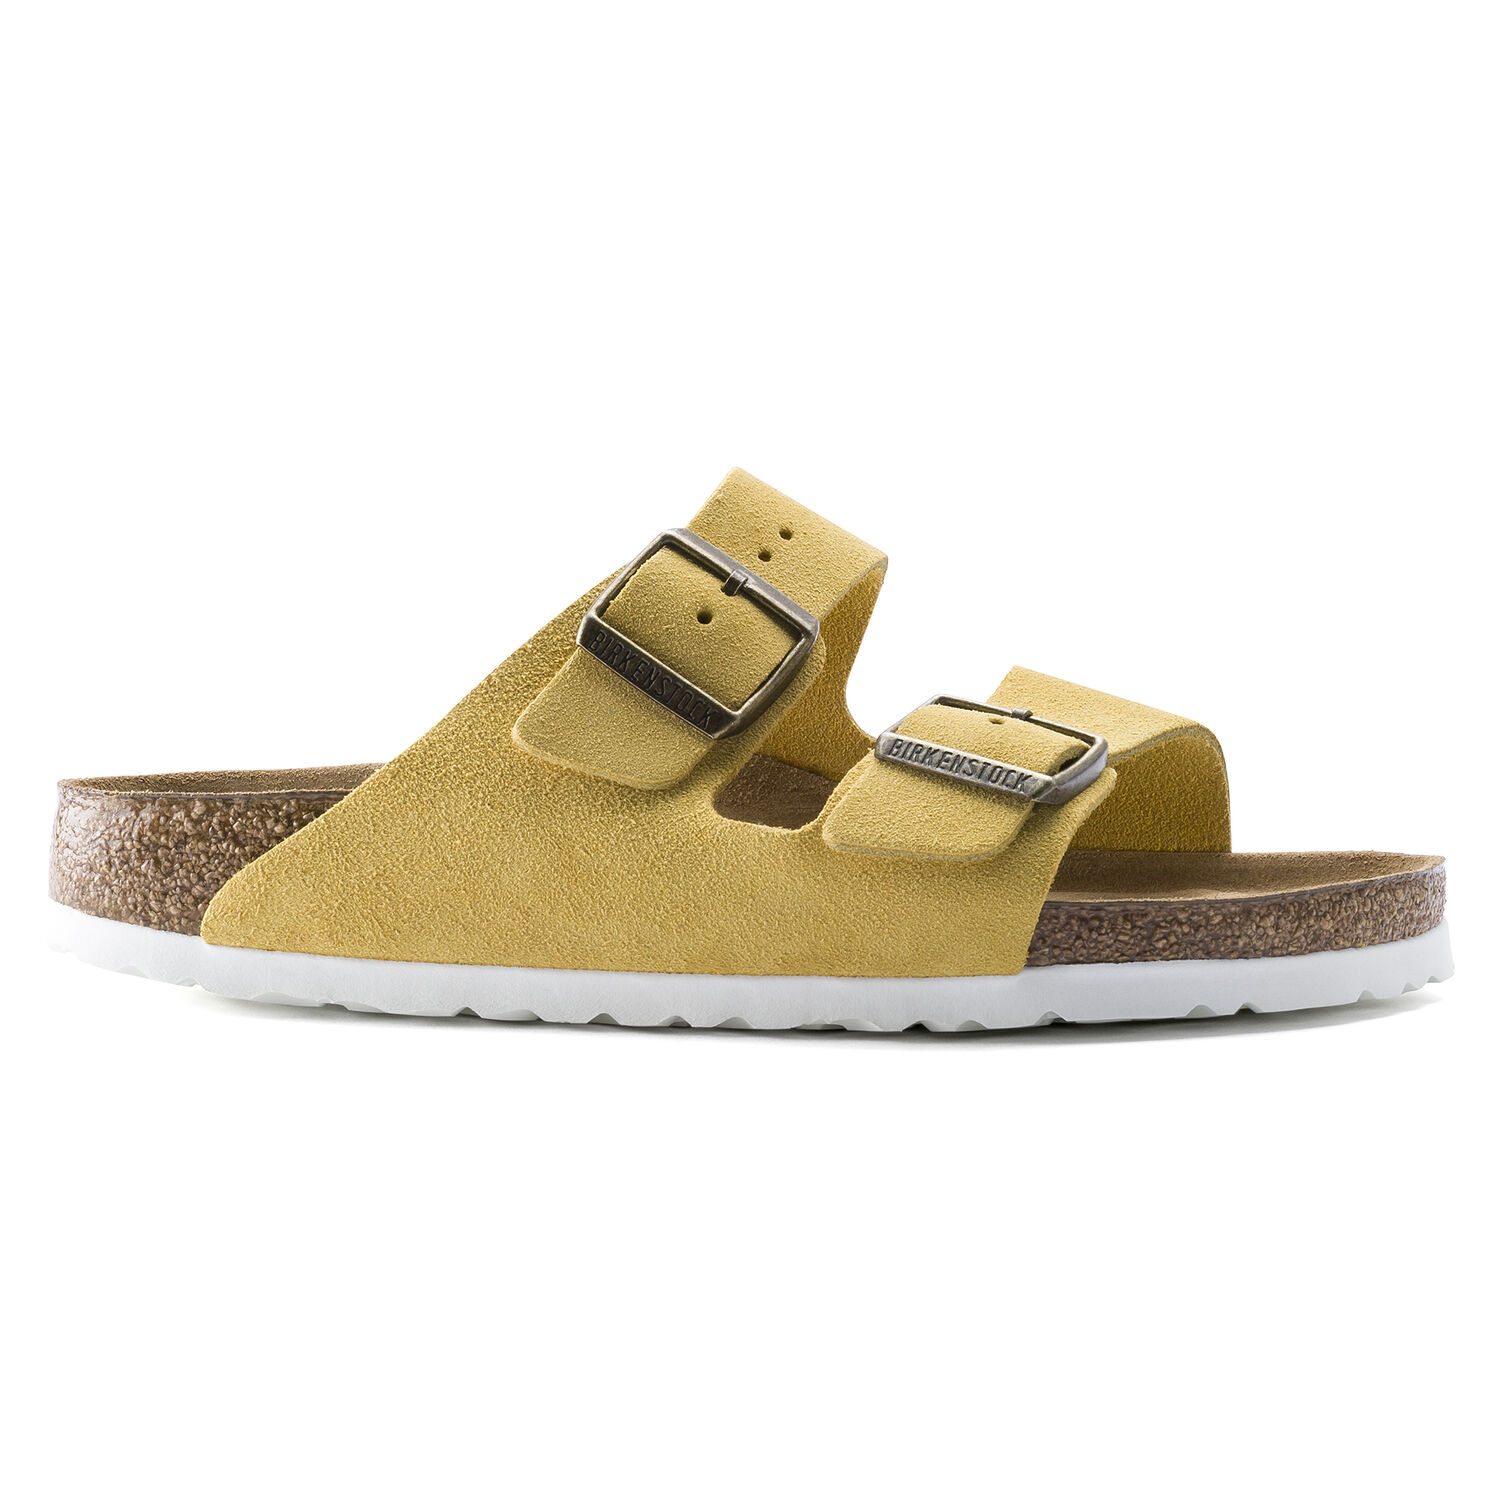 Soft Footbed Oil Leather Sandal (Buy 2 Get 10% OFF & Free Shipping)